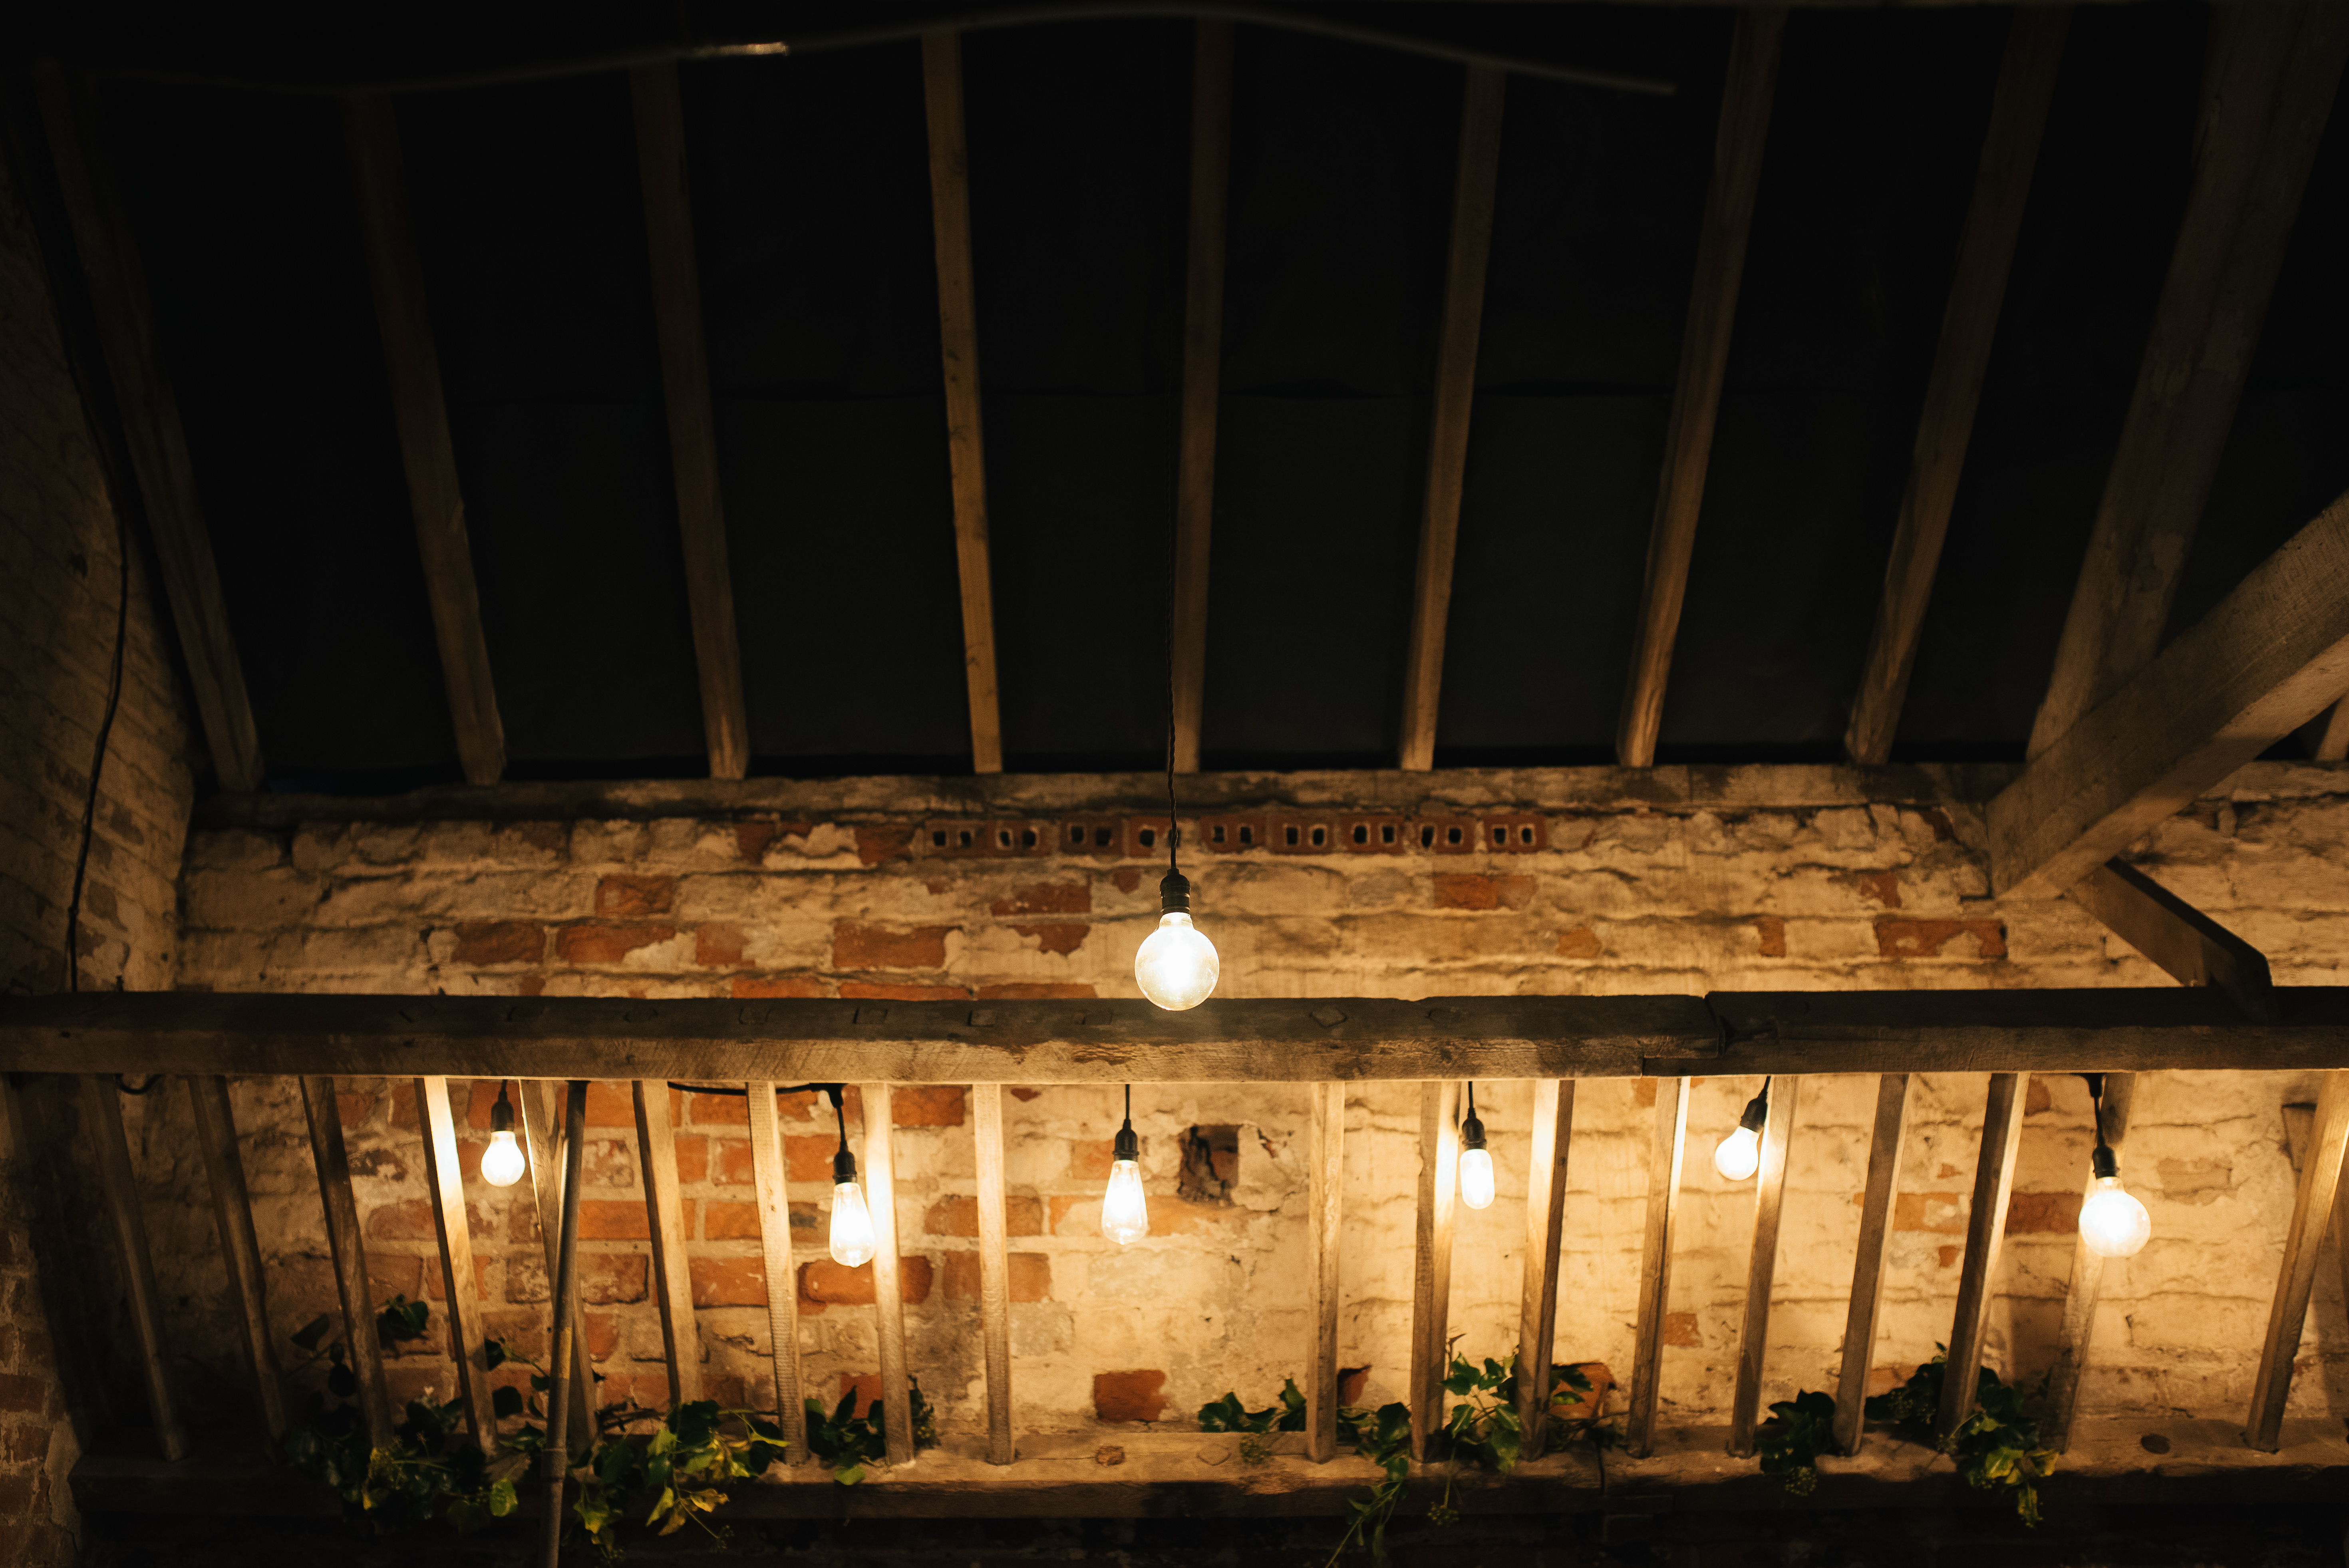 The cow shed at the normans